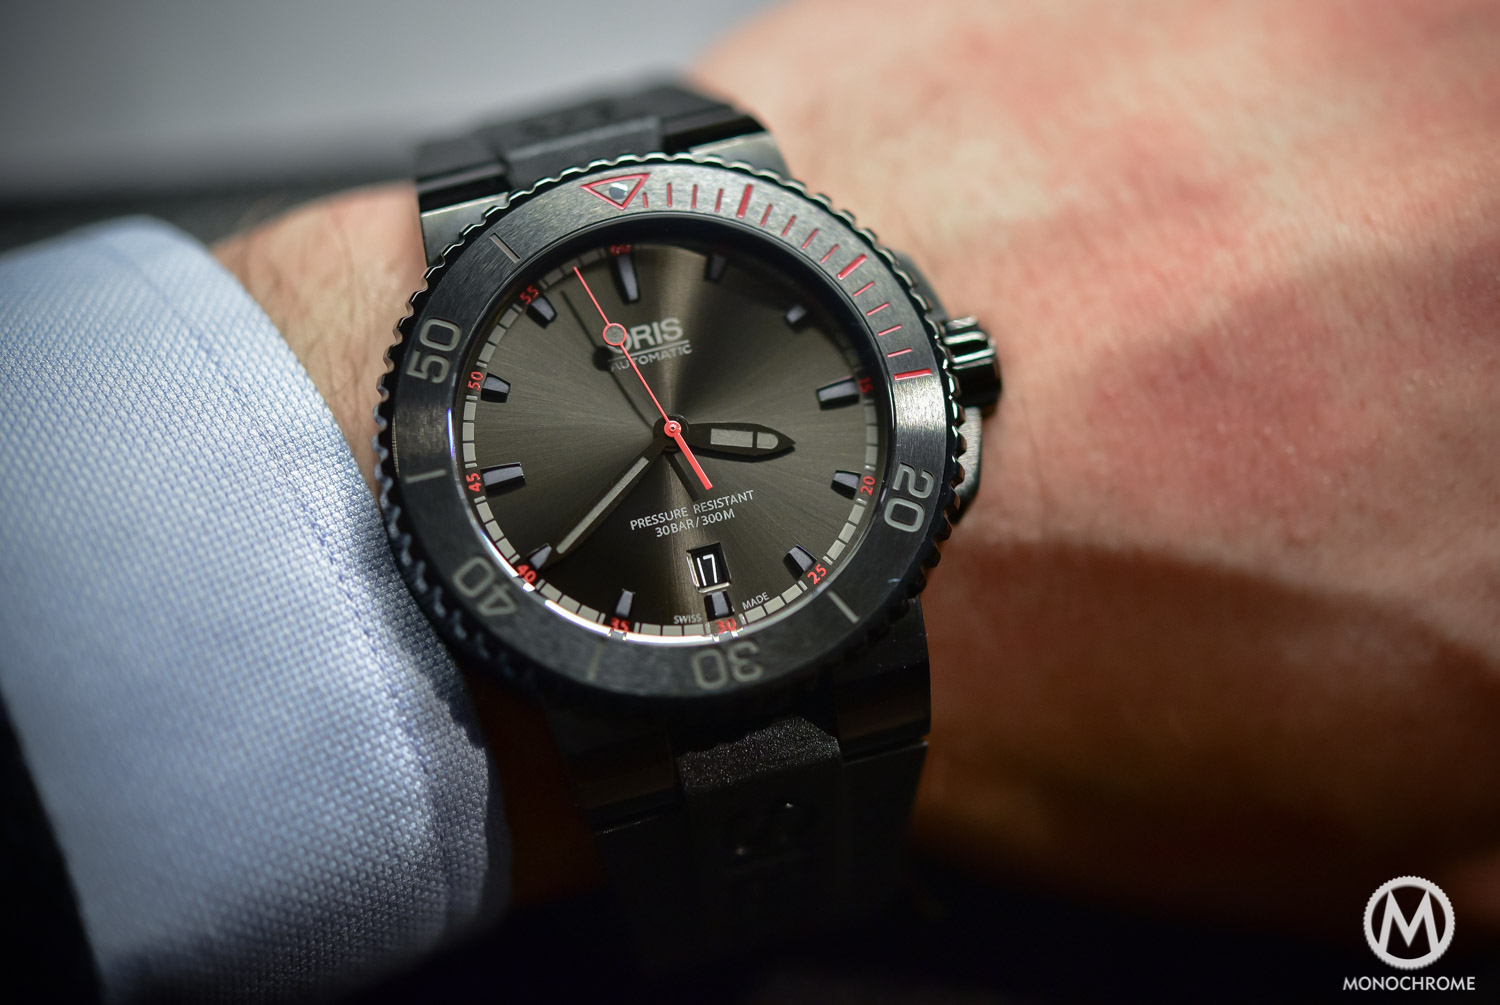 Introducing The El Hierro Limited Edition From Oris